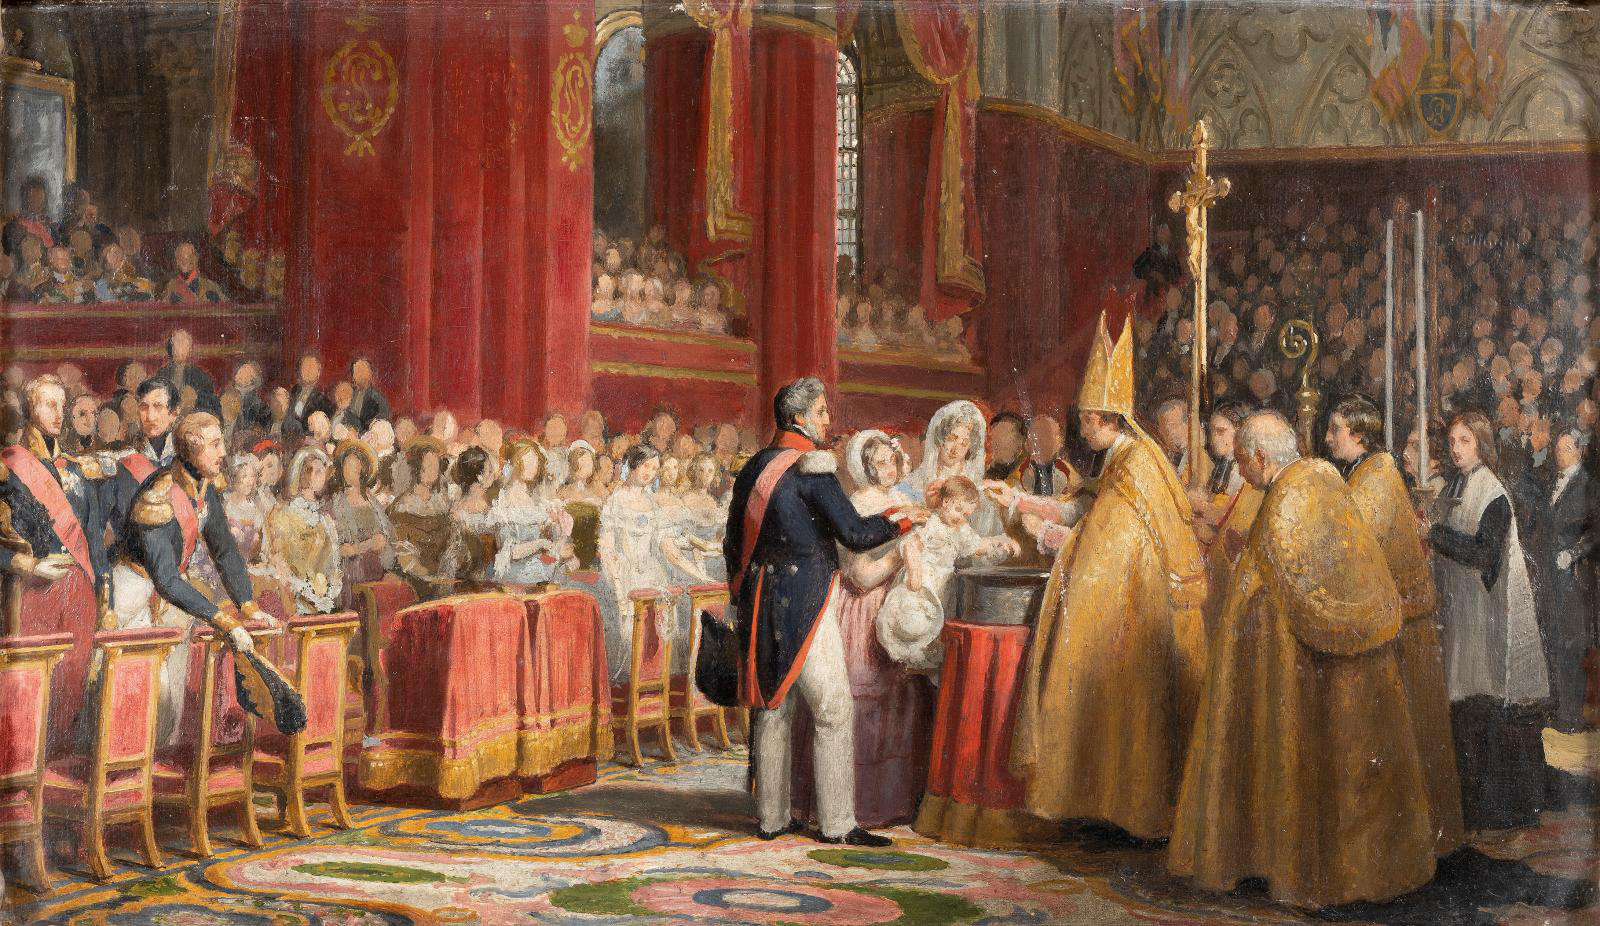 Attributed to Jean-Baptiste Vinchon (1789-1855), The Baptism of His Royal Highness the Comte de Paris at Notre-Dame on May 2, 1841, oil on canvas, 28 x 45 cm (11 x 17.7 in). Paris, Drouot, October 9, 2020. Binoche & Giquello auction house. Mr. Millet. Result: €14,168